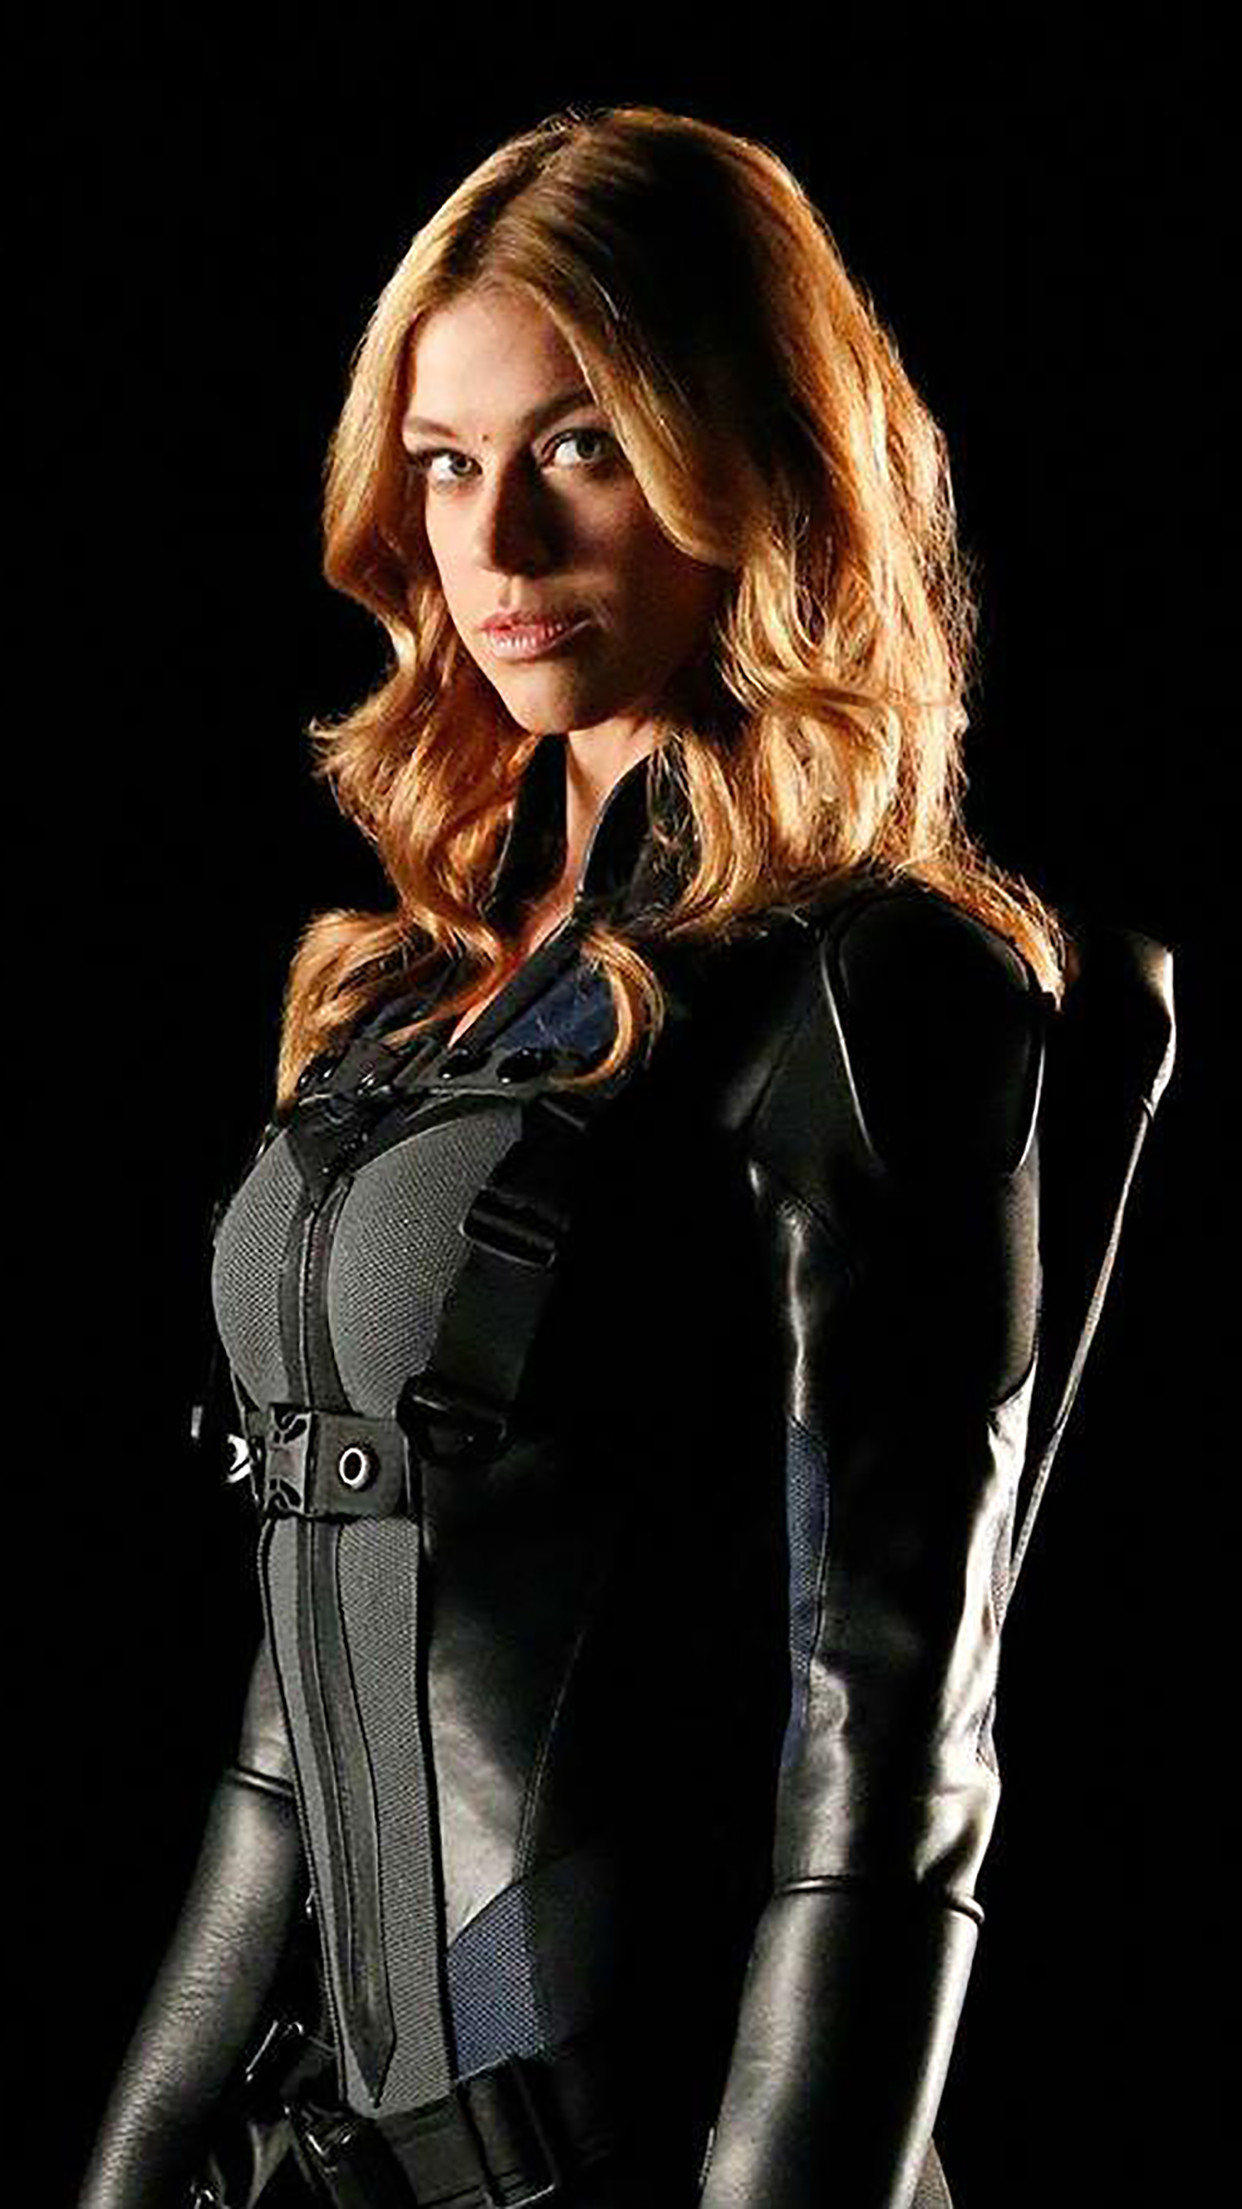 Adrianne Palicki Agents Of SHIELD wallpapers (14 Wallpapers)